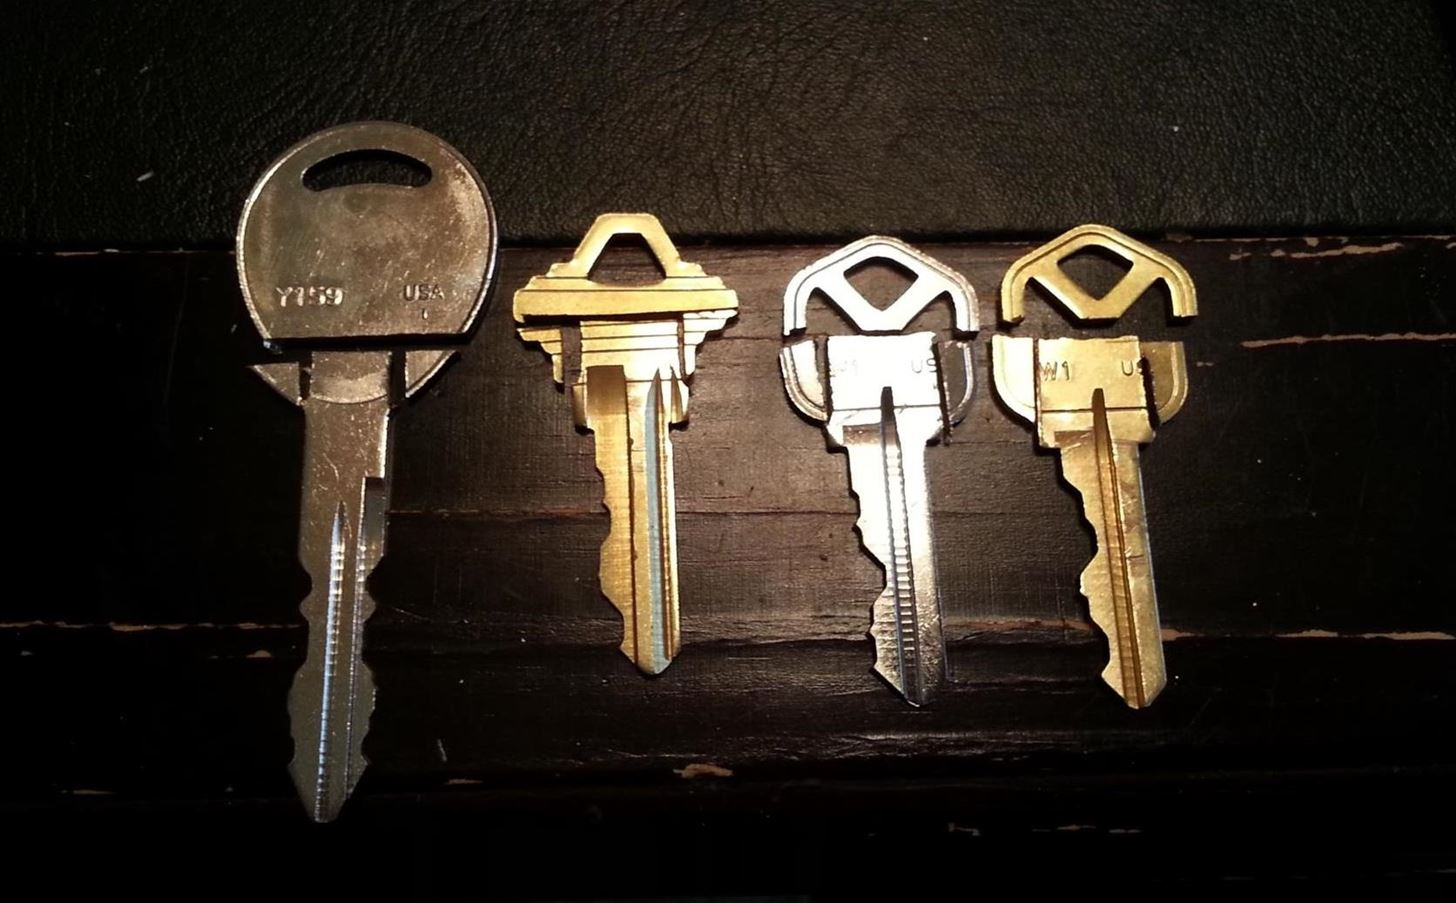 Trade In Your Bulky Set Of Keys For This Simple Diy Swiss